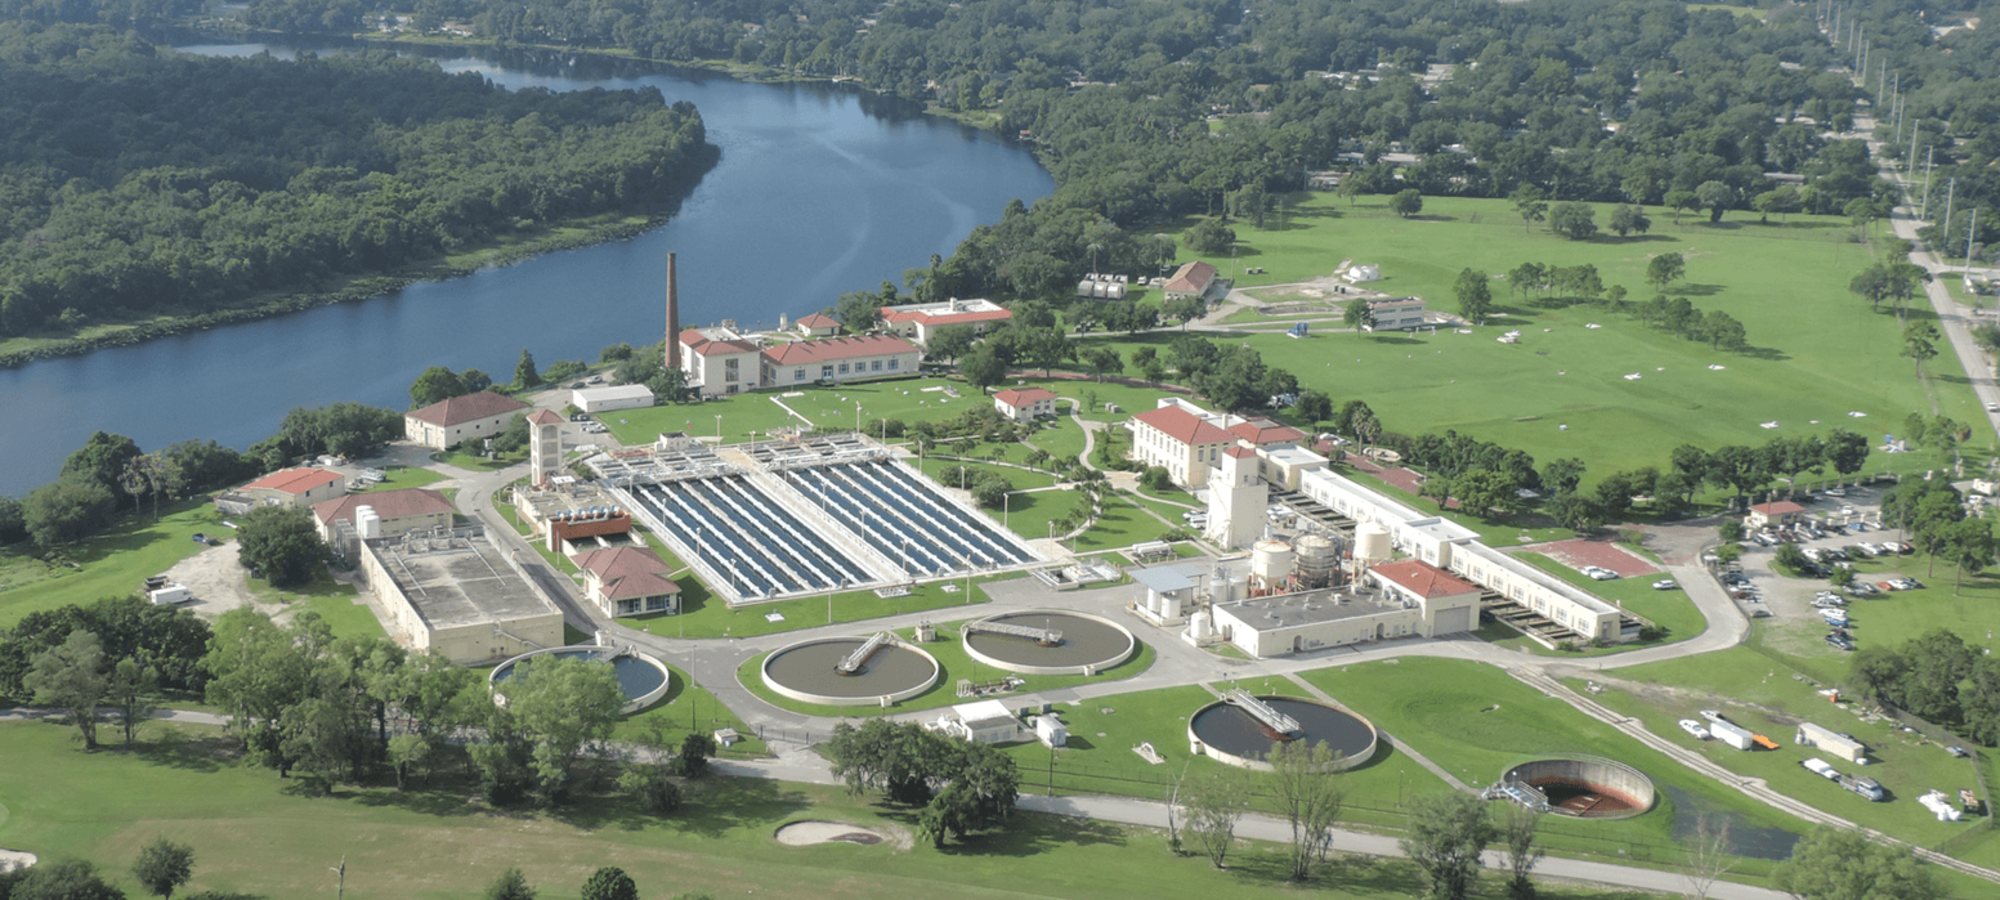 Aerial photo of David L. Tippin Water Treatment Plant